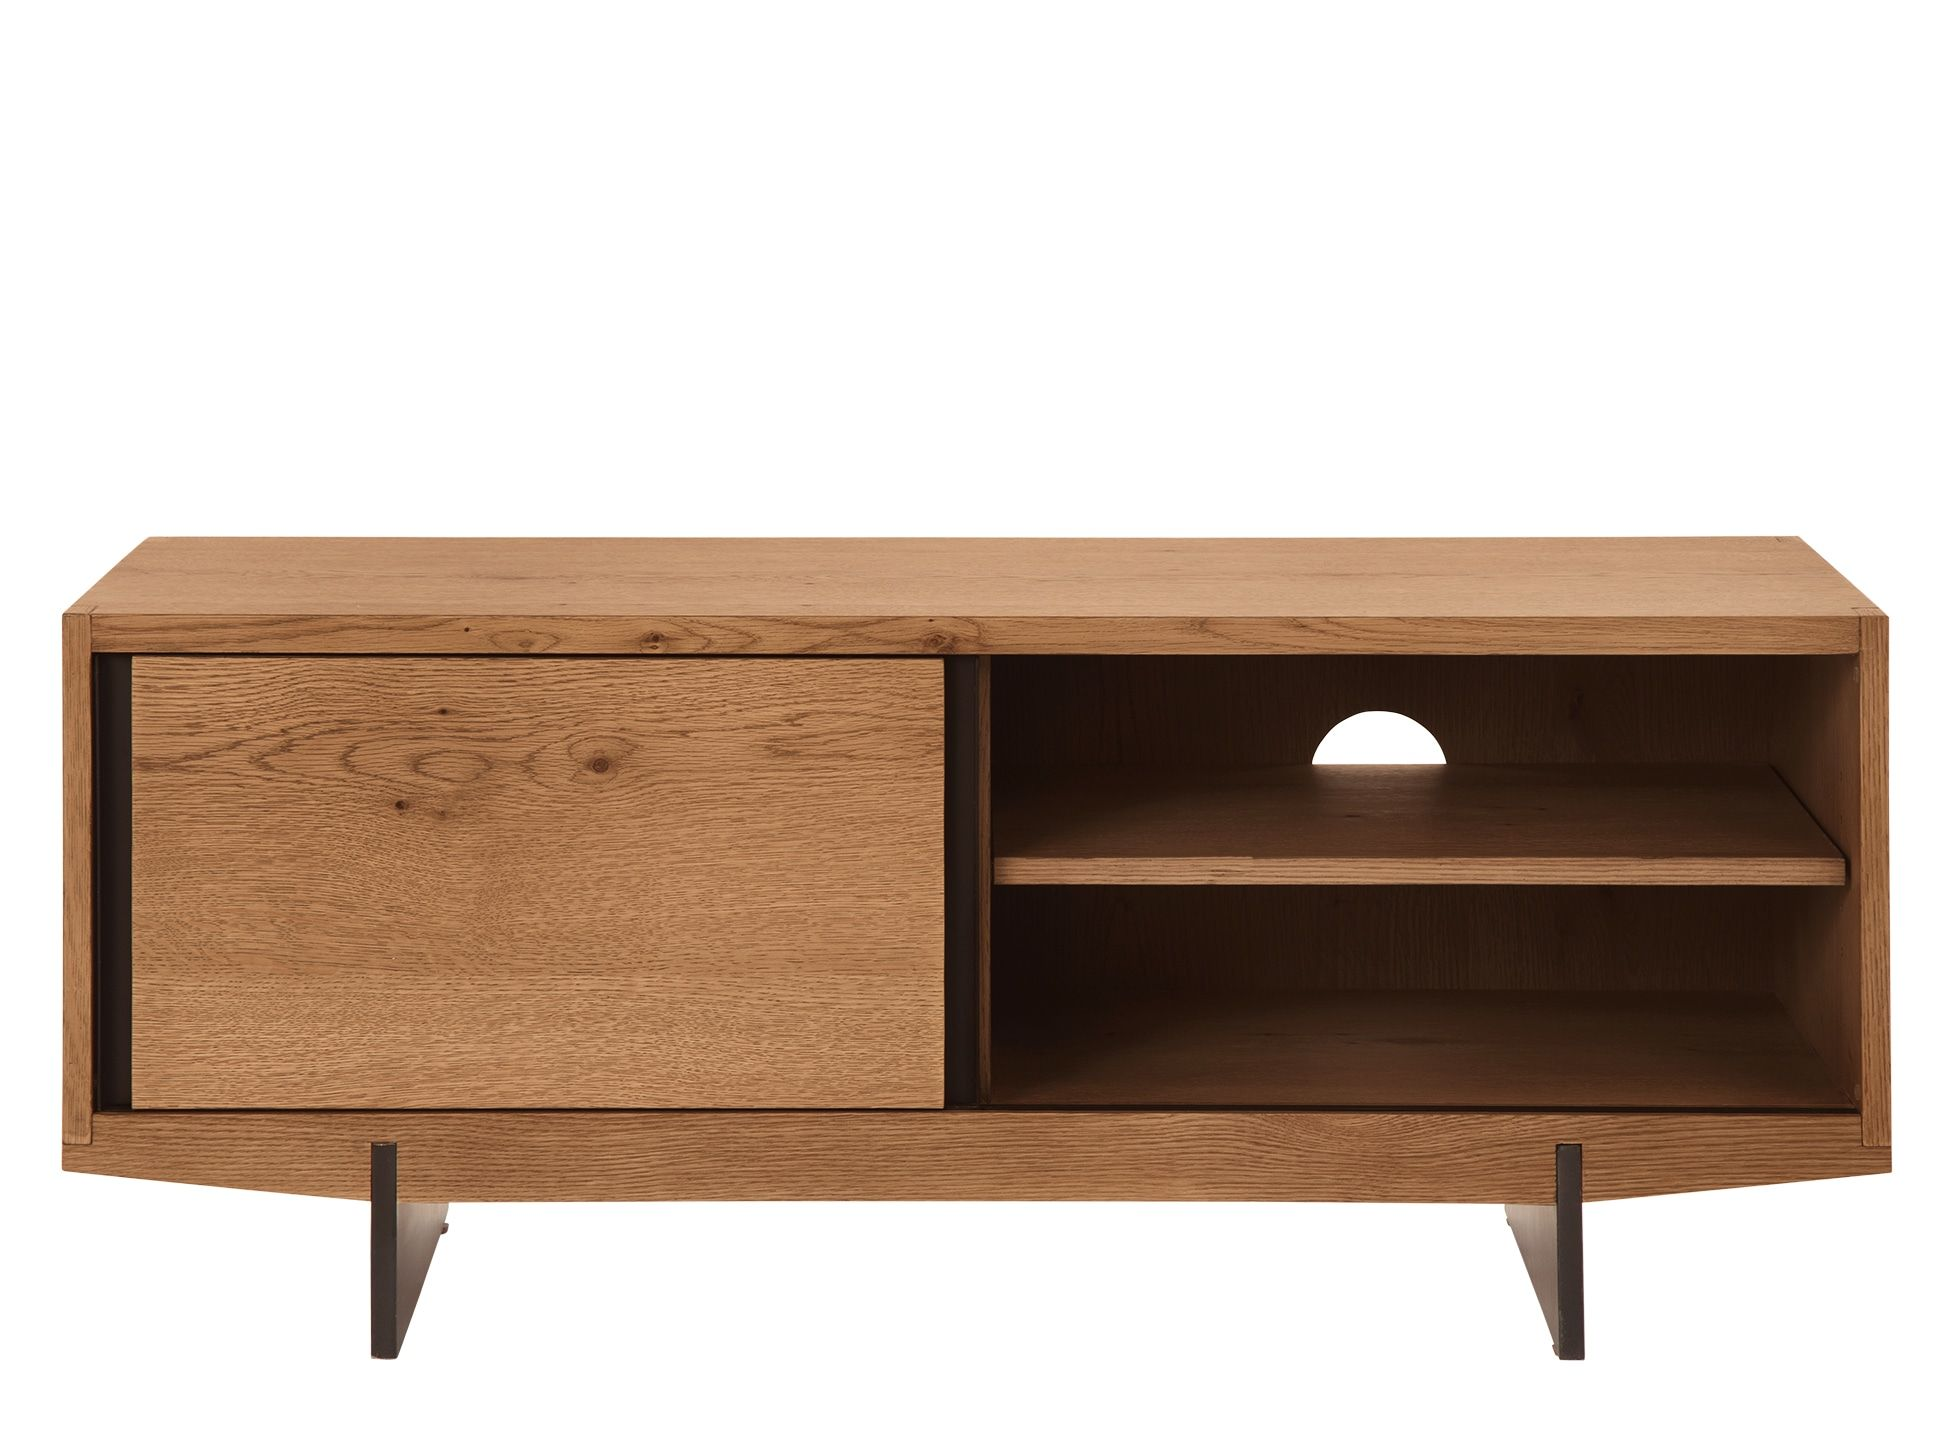 Ringo Media Unit Dark Stain Oak From Made Com Dark Wood New  # Meuble Tv A Roulettes Fly